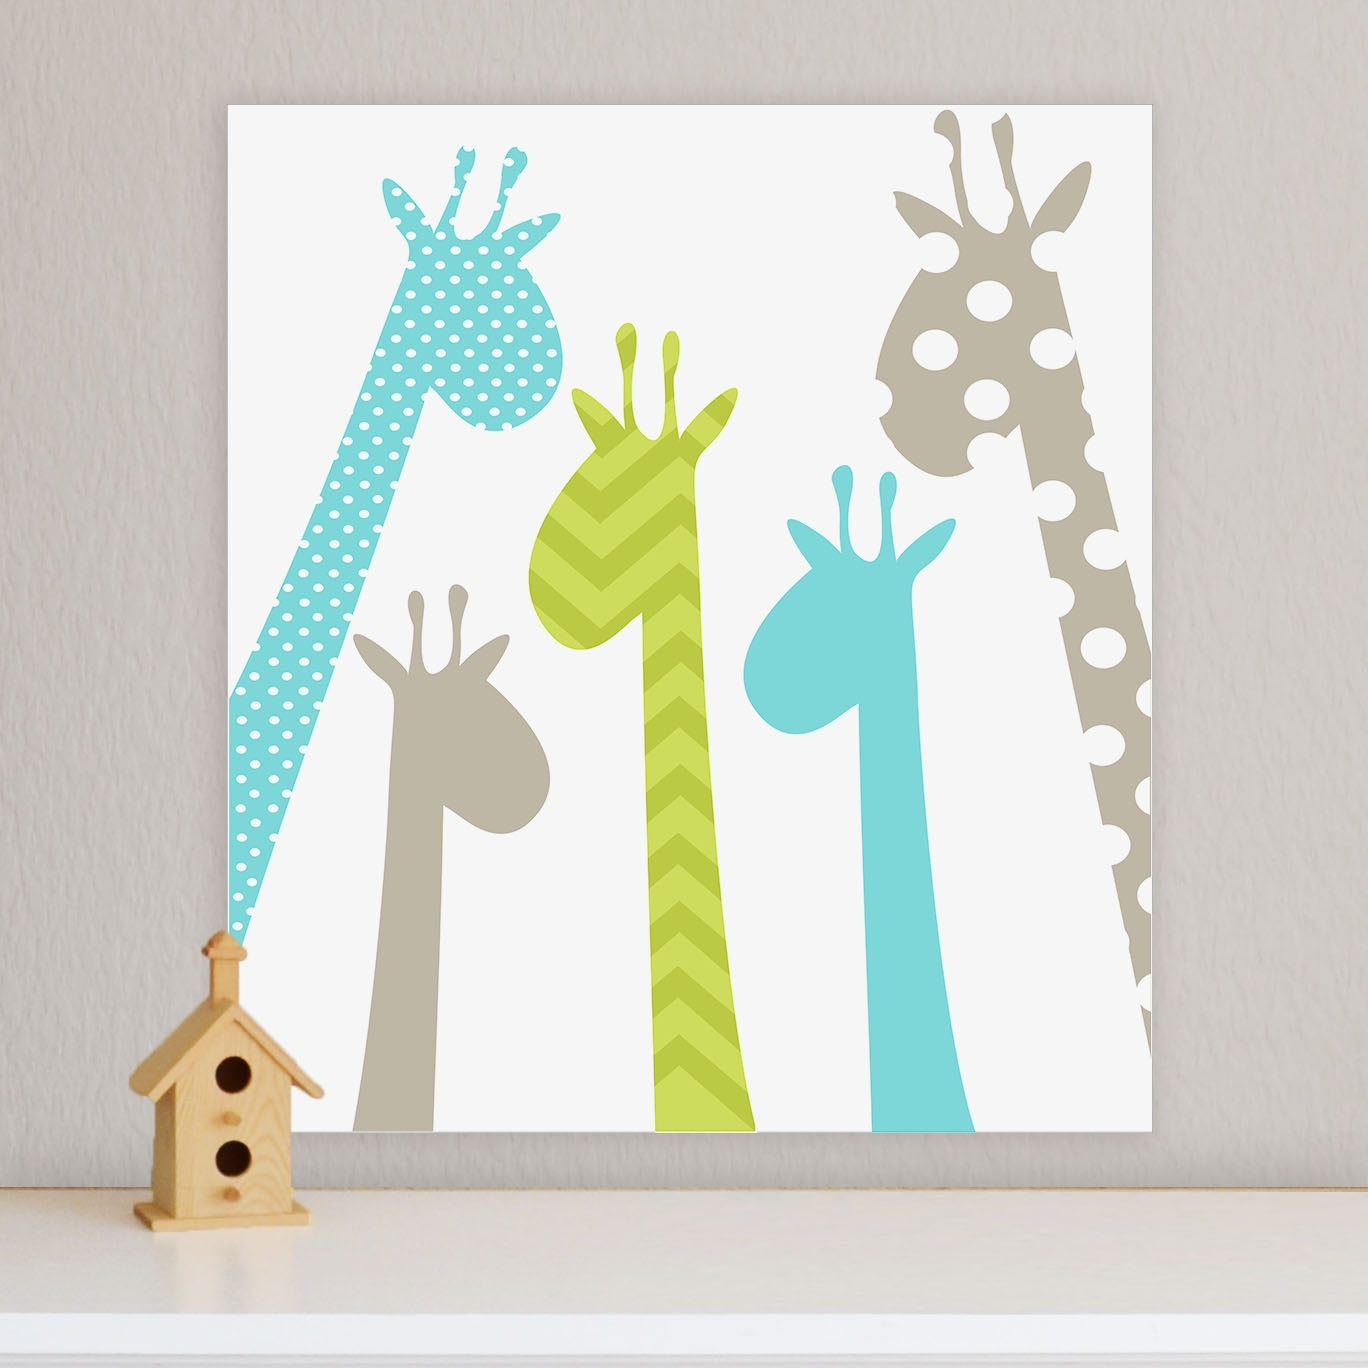 Most Recent Canvas Wall Art For Kids Rooms – Dronemploy #00c8f2ef646c With Regard To Giraffe Canvas Wall Art (View 6 of 15)